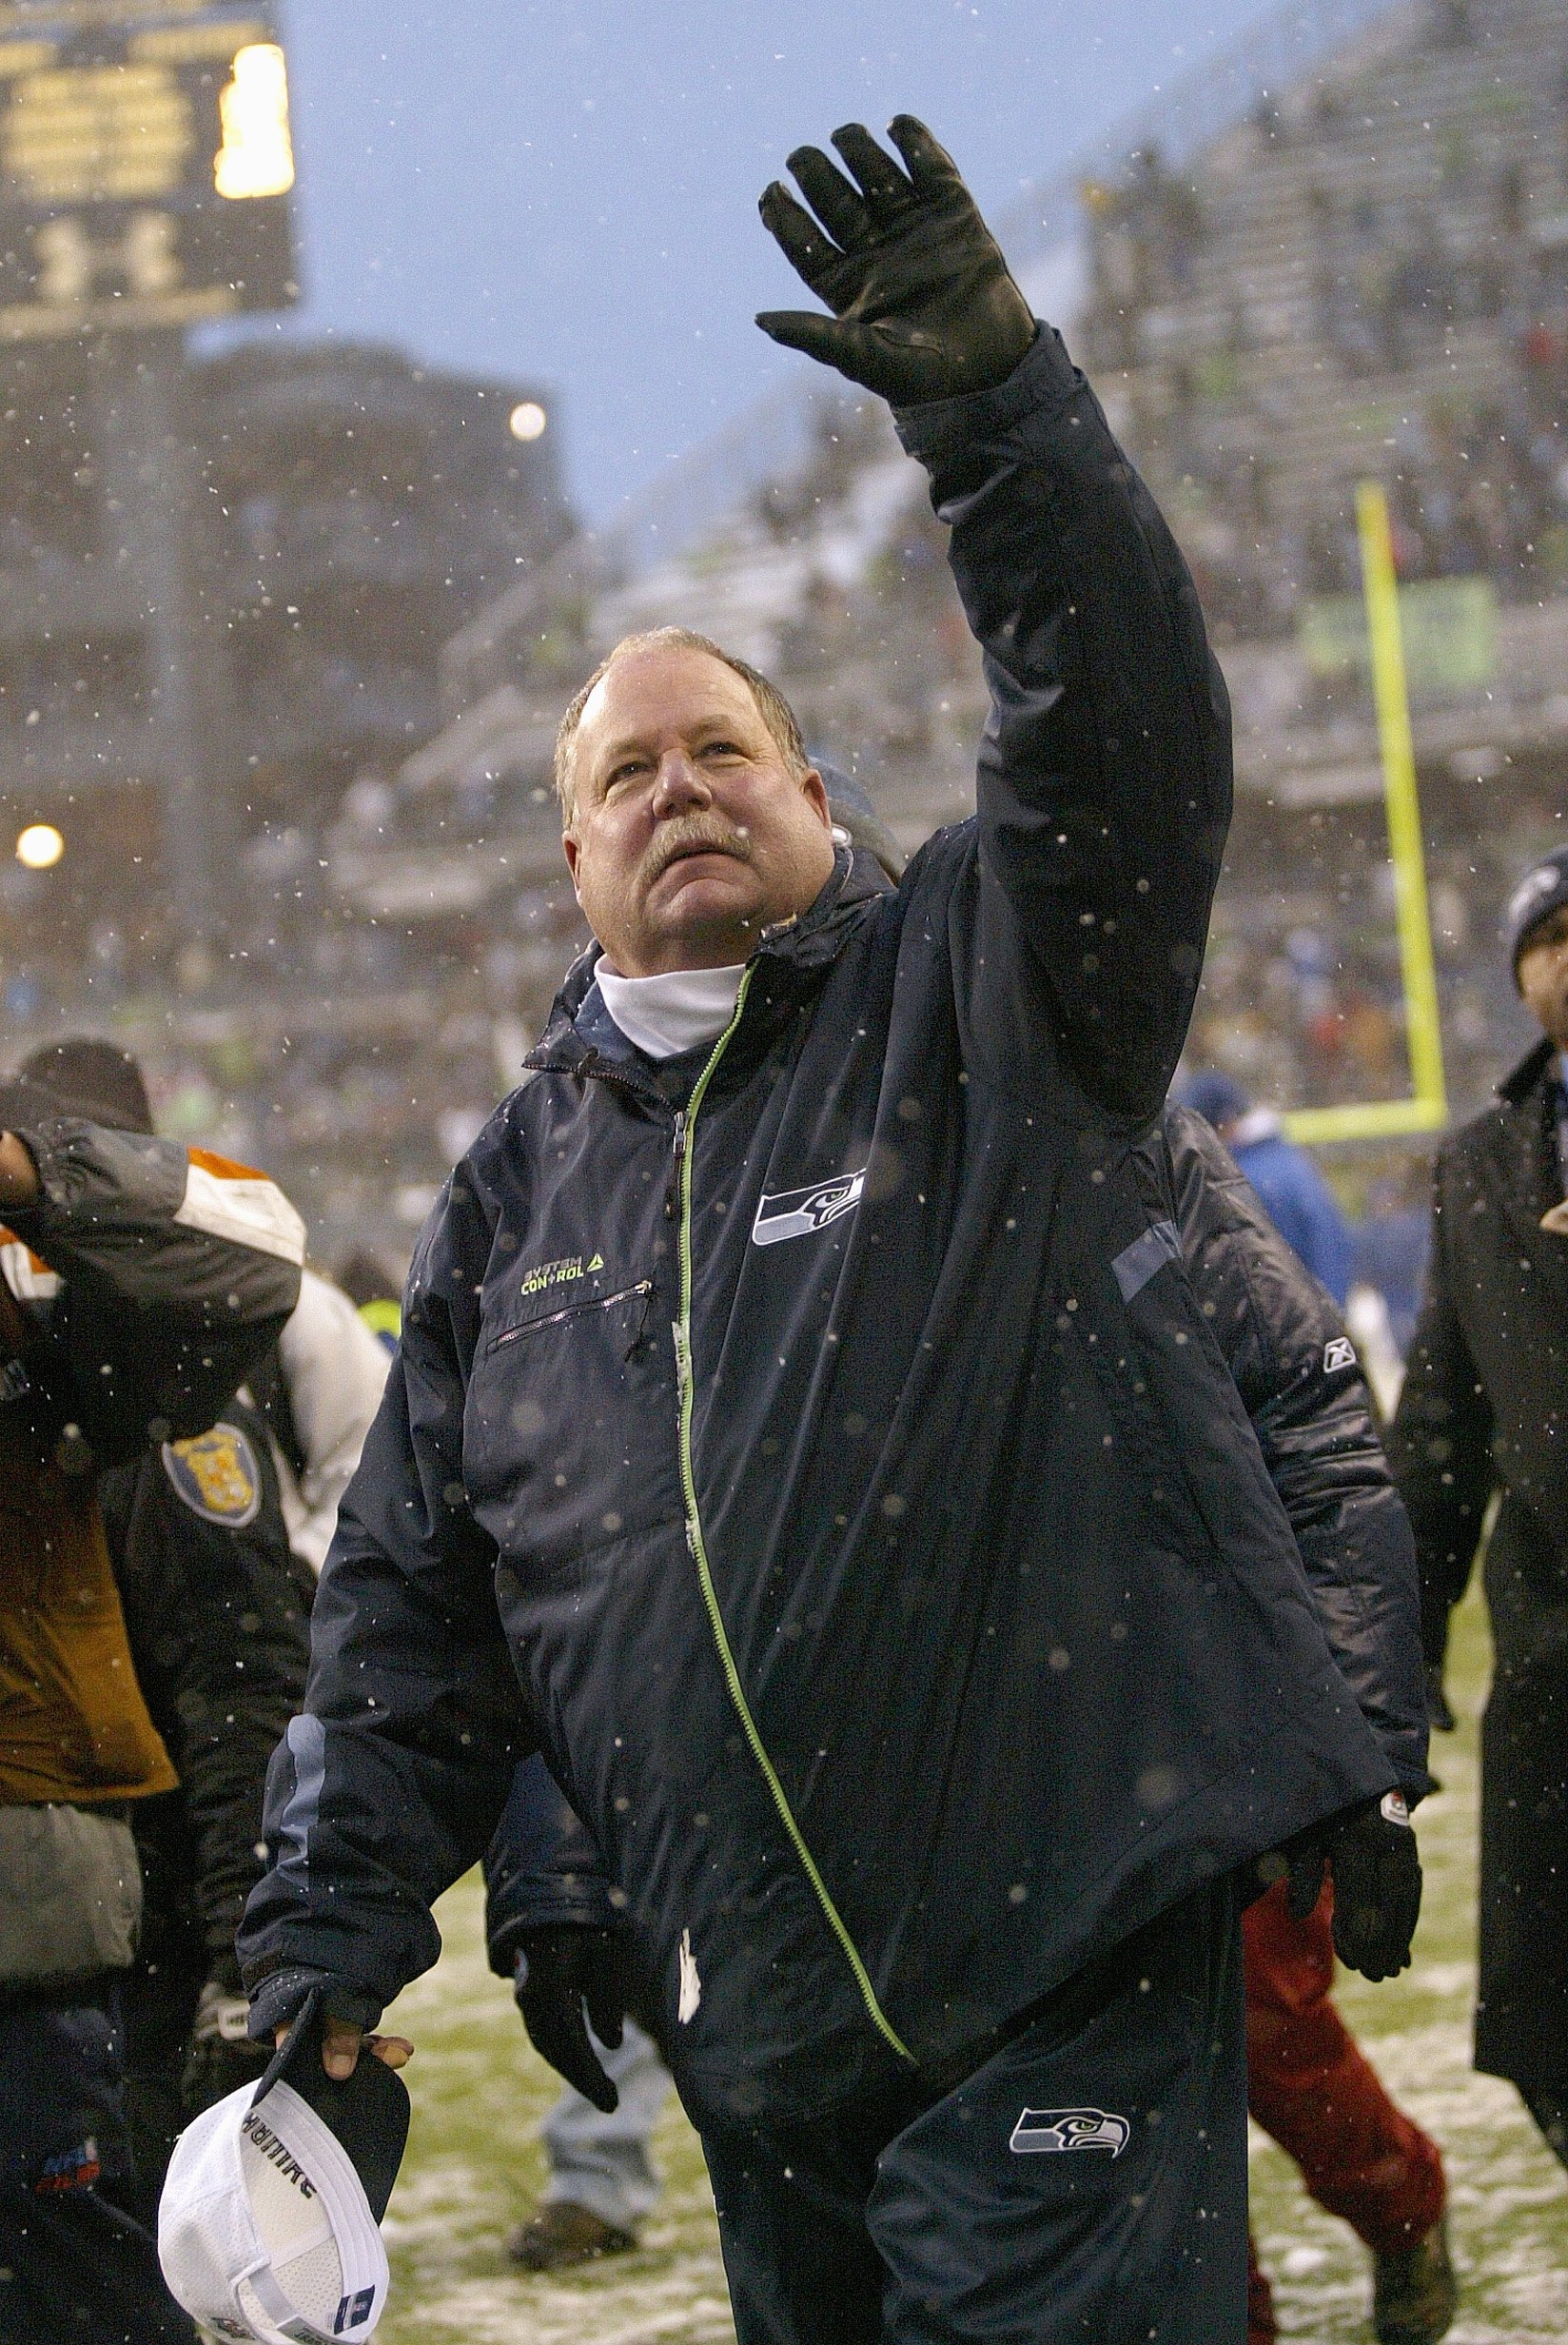 SEATTLE - DECEMBER 21: Head coach Mike Holmgrem of the Seattle Seahawks waves to fans after his final home game as head coach against the New York Jets on December 21, 2008 at Qwest Field in Seattle, Washington. The Seahawks defeated the Jets 13-3. (Photo